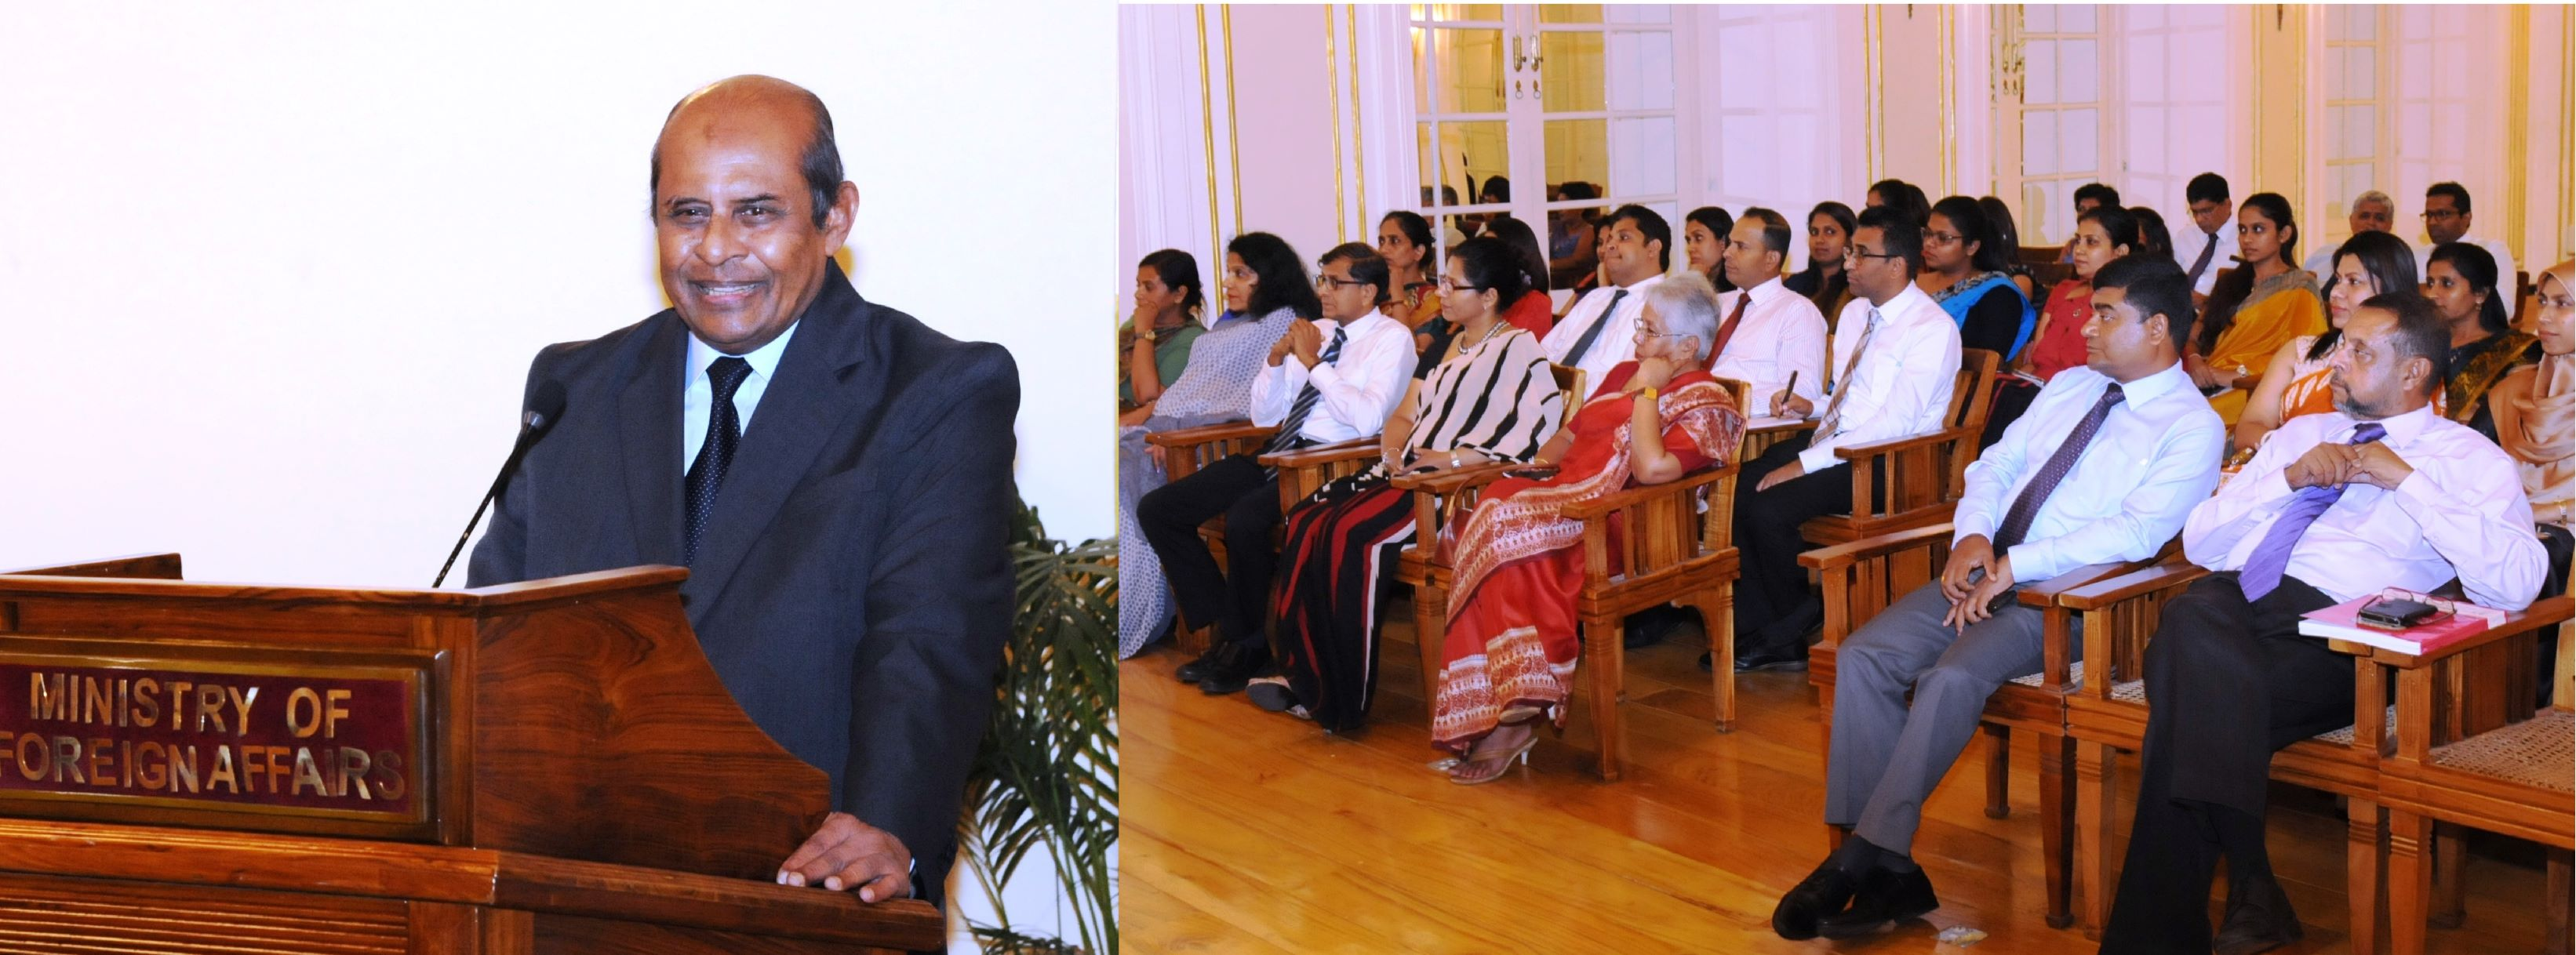 Foreign Minister Marapana Calls On Sri Lankan Diplomats To Boost The Image Of Lanka Overseas Through Effective Execution Public Diplomacy